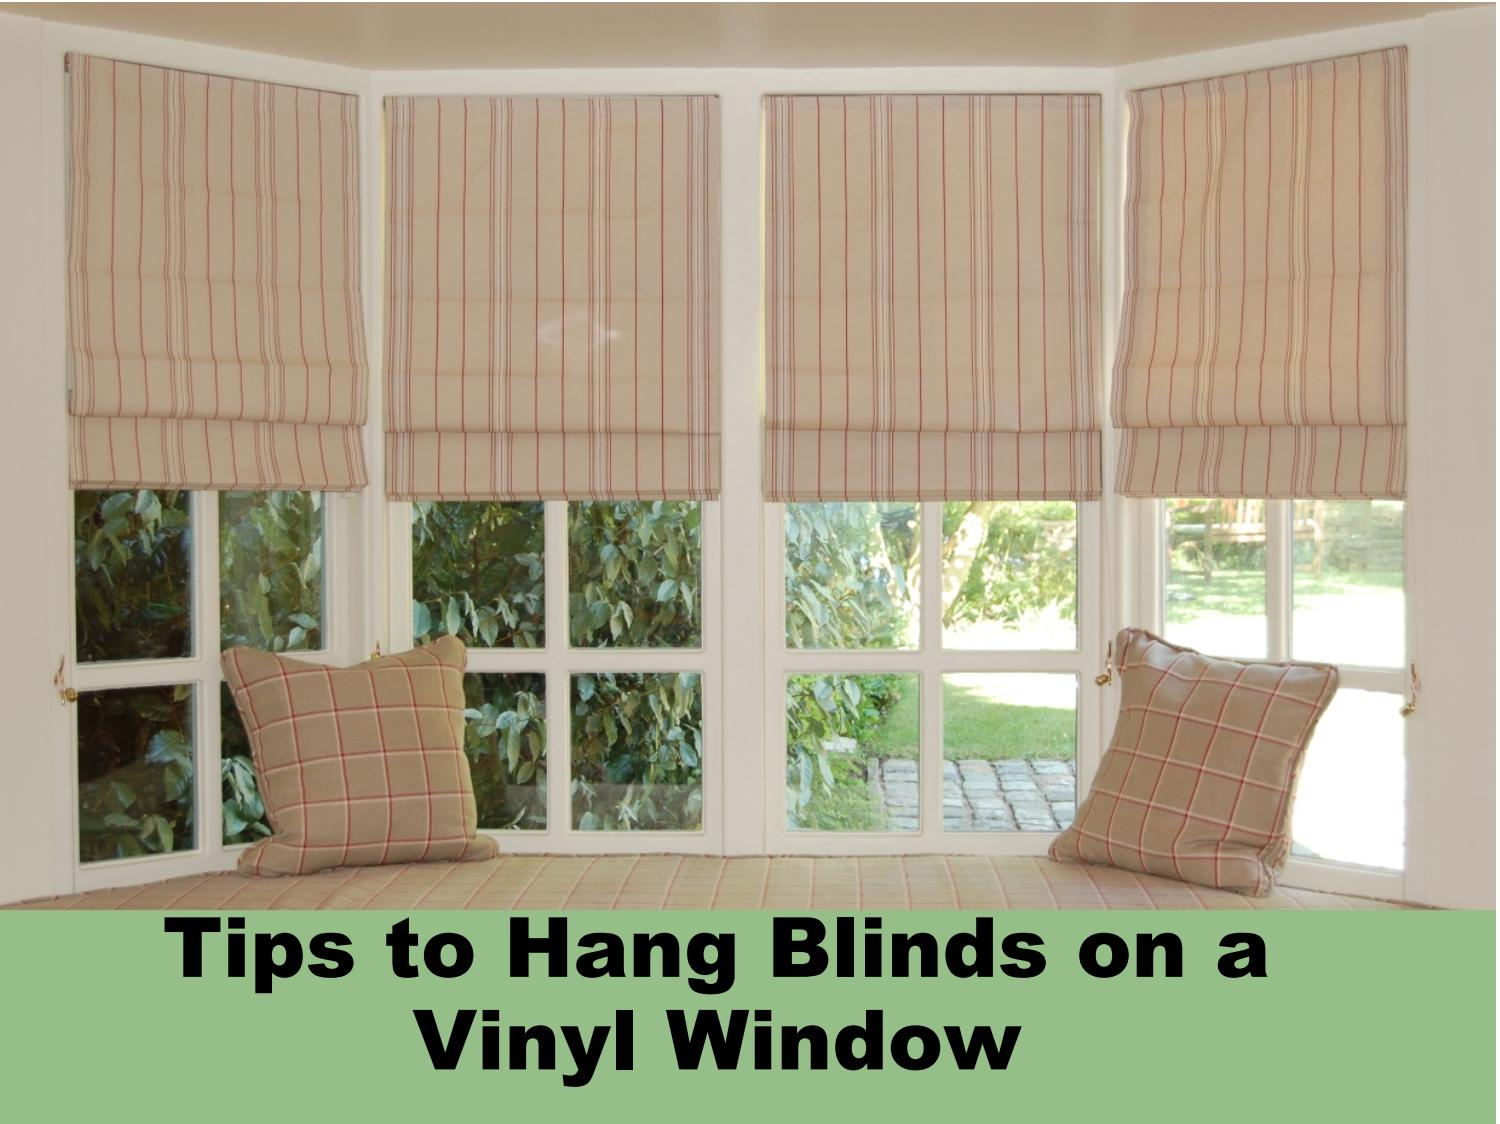 Tips To Hang Blinds On A Vinyl Window By Ekaterina Sav Issuu